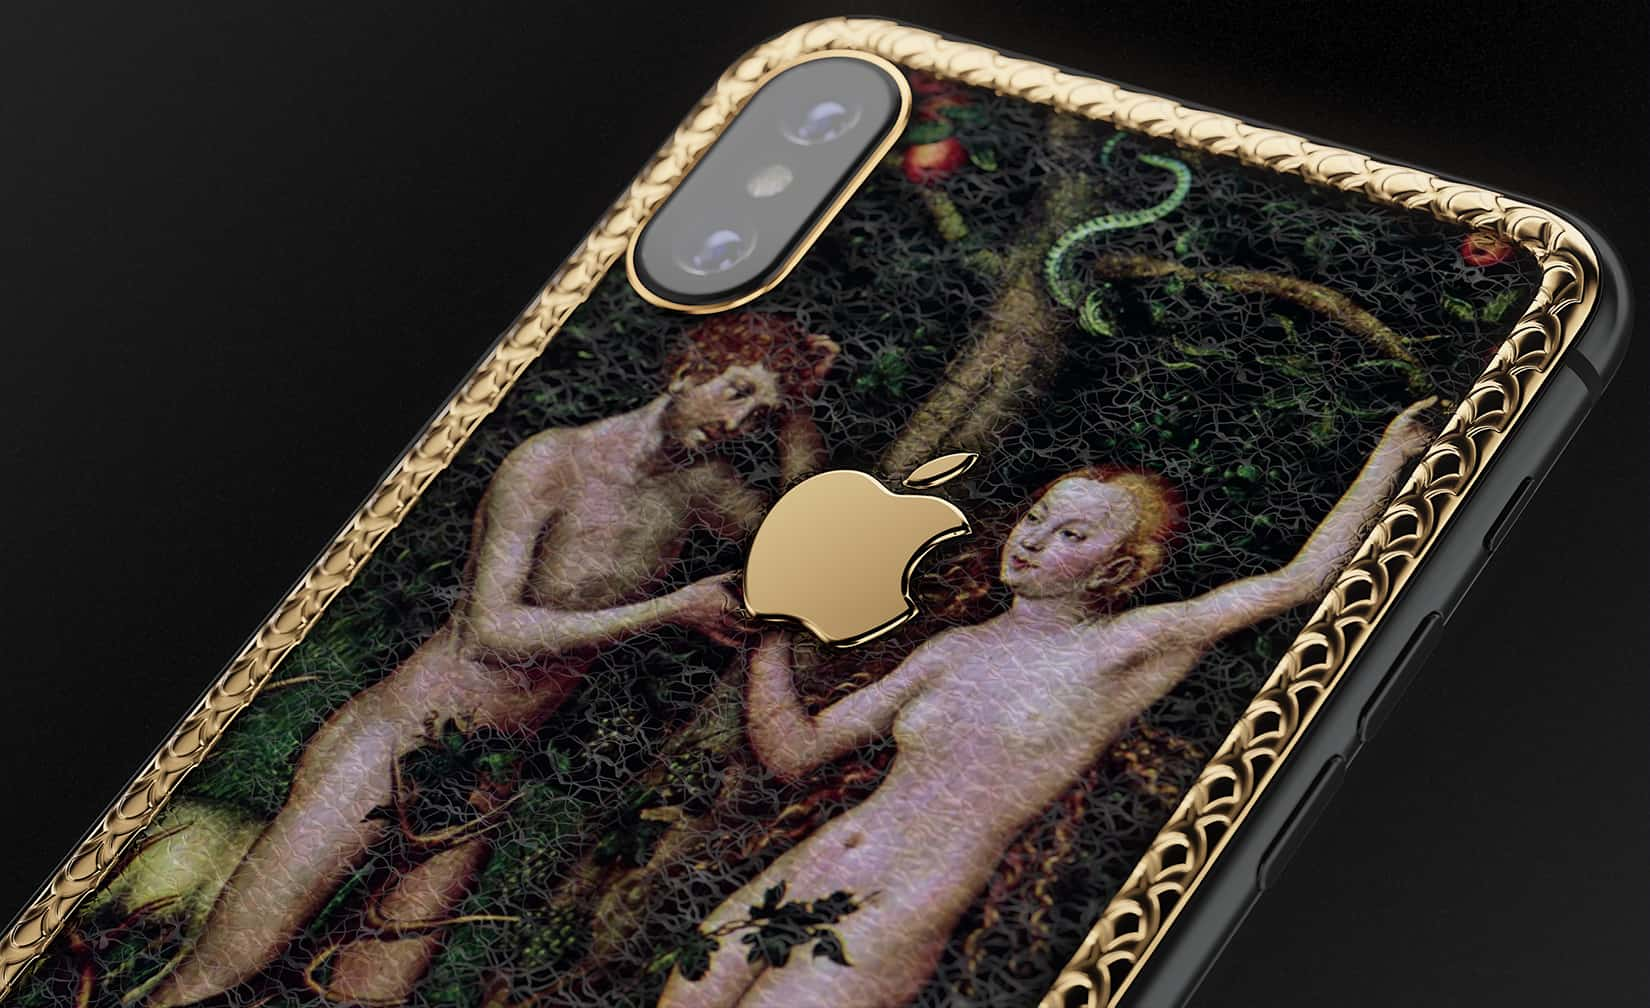 Luxury Adam and Eve iPhones will Tempt You in the Best Way